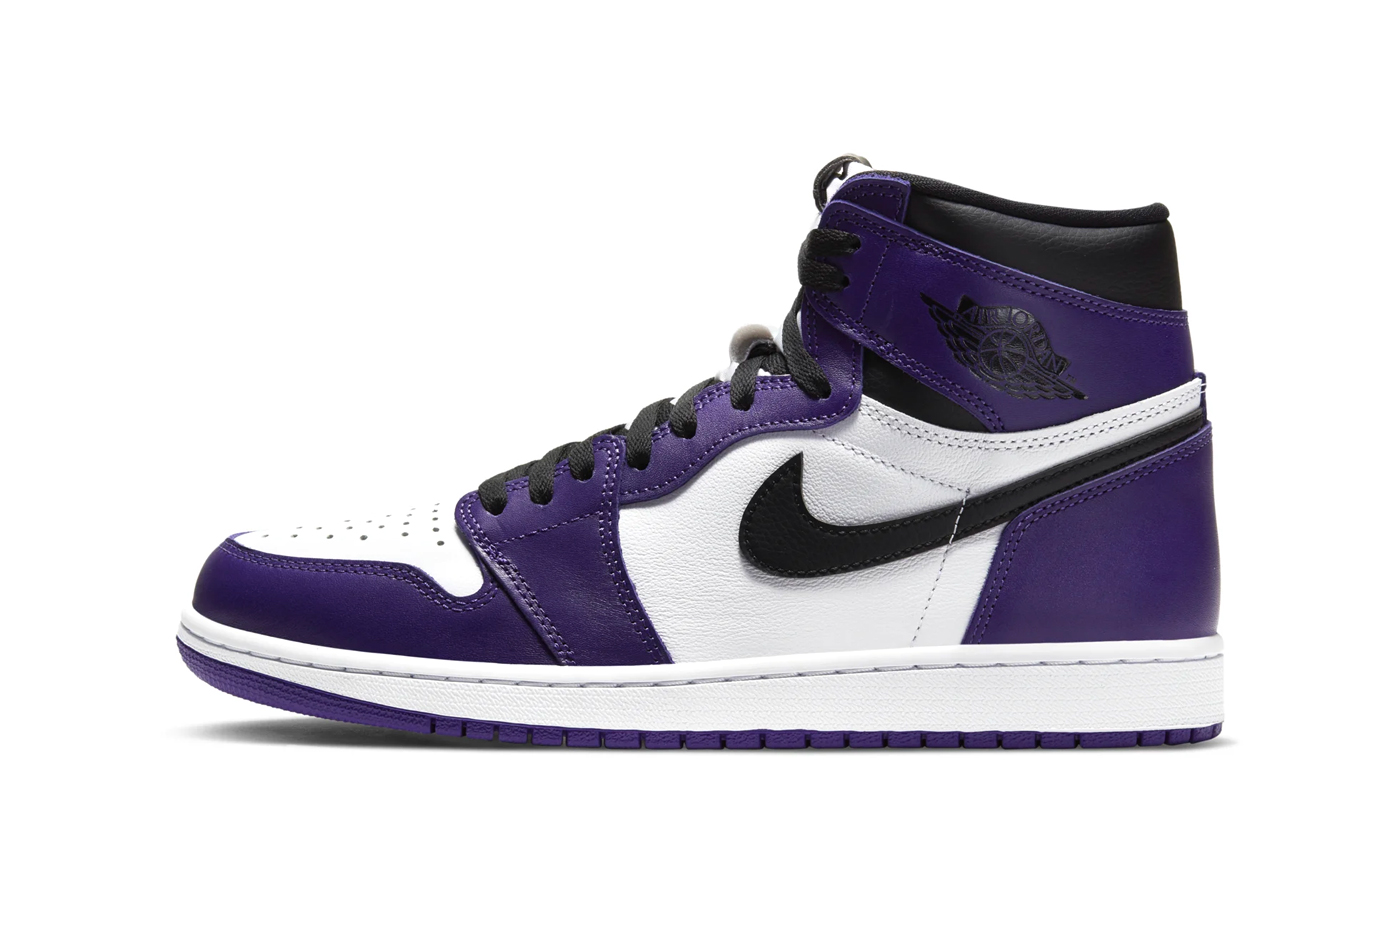 air jordan 1 low court purple grade school